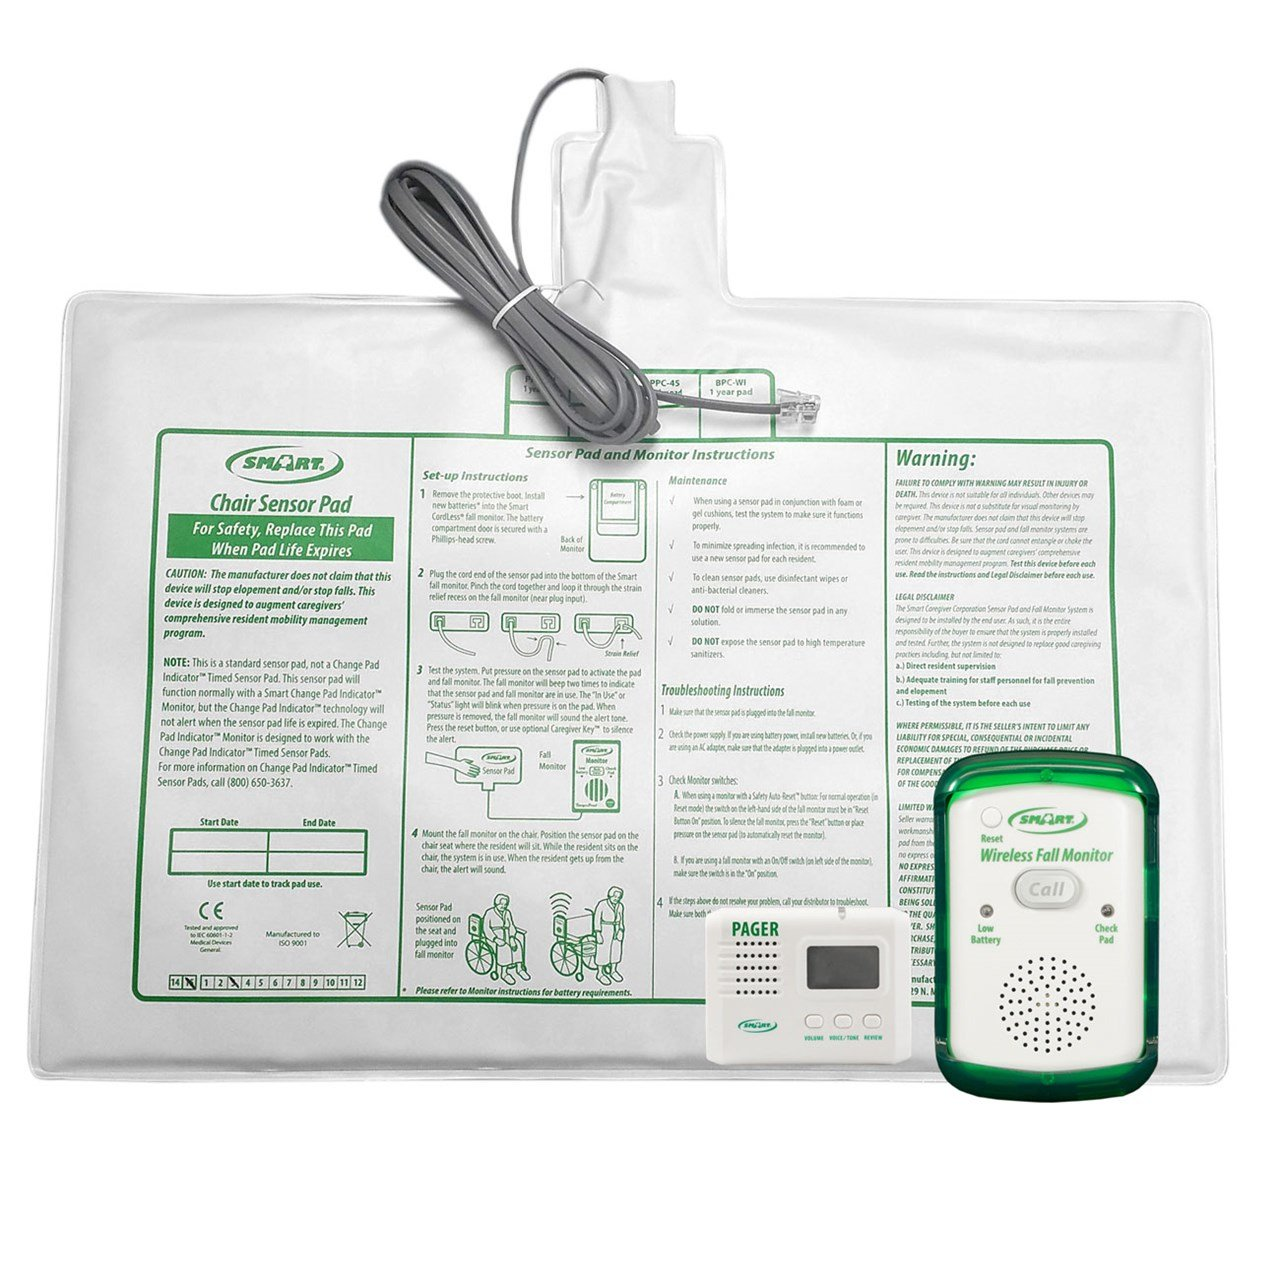 Wireless Fall Monitor-10x15-in Chair Pad-Pager Kit by Smart Caregiver